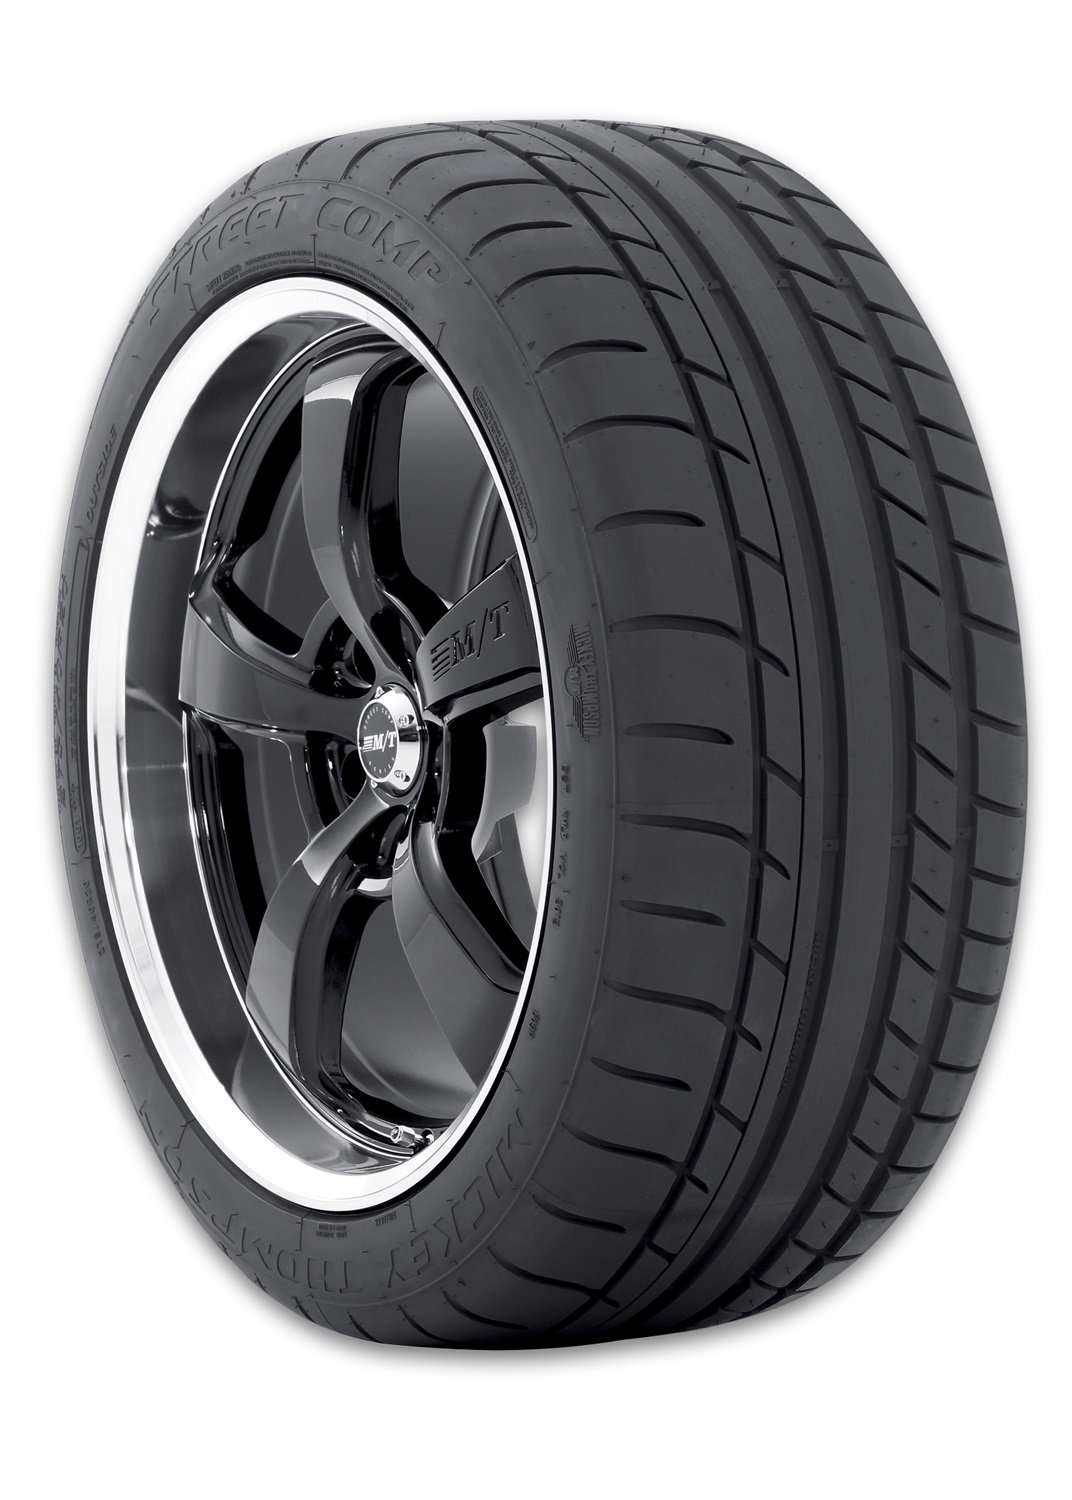 Mickey Thompson Street Comp Performance Radial Tire - 315/35R17 102W 90000020061